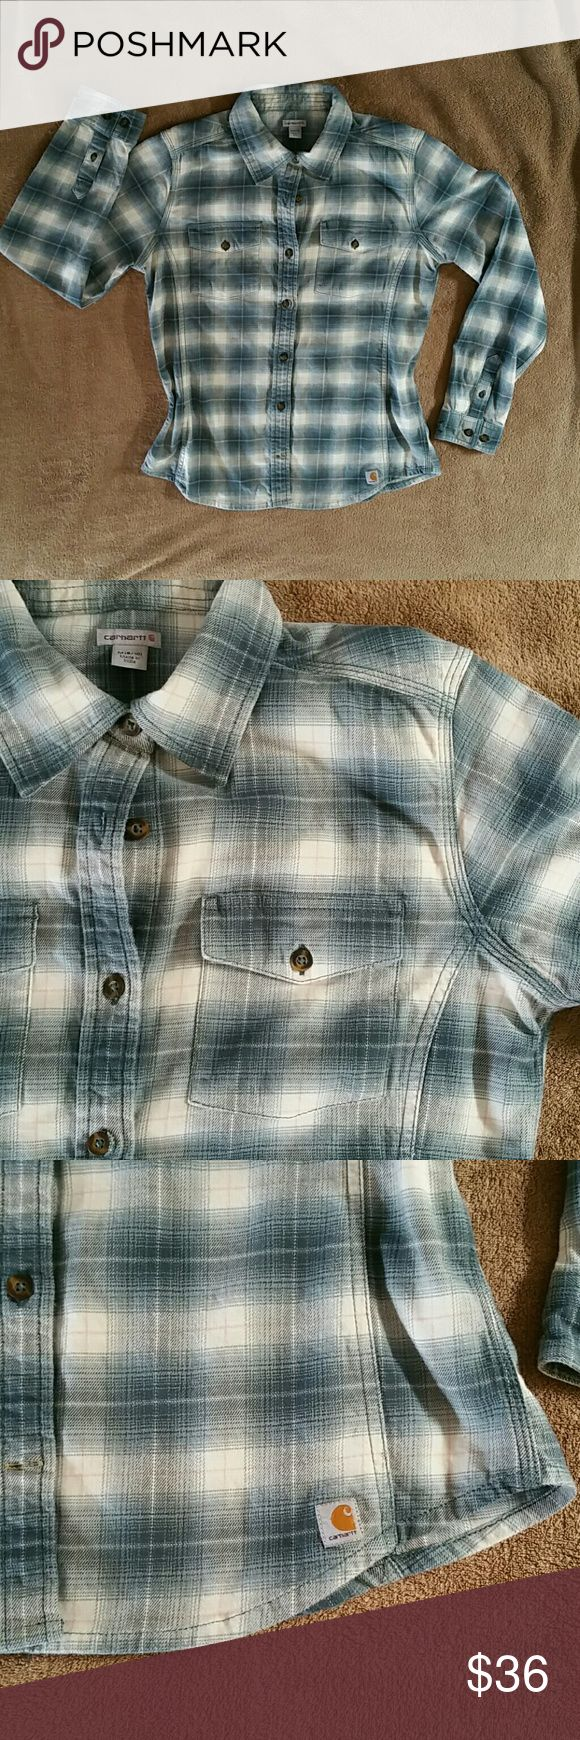 BNWT CARHART LADIES SEAMED FLANNEL BNWT CAR HART LADIES FLANNEL 97% Cotton/3% Spandex fit is 8/10 Beautifully seamed to flatter figure. Thicker flanner. Washed once and never wore. Sadly does nor fit me. Ordered from the Carhart catalog. Perfect for outdoor activities! Carhartt Tops Button Down Shirts